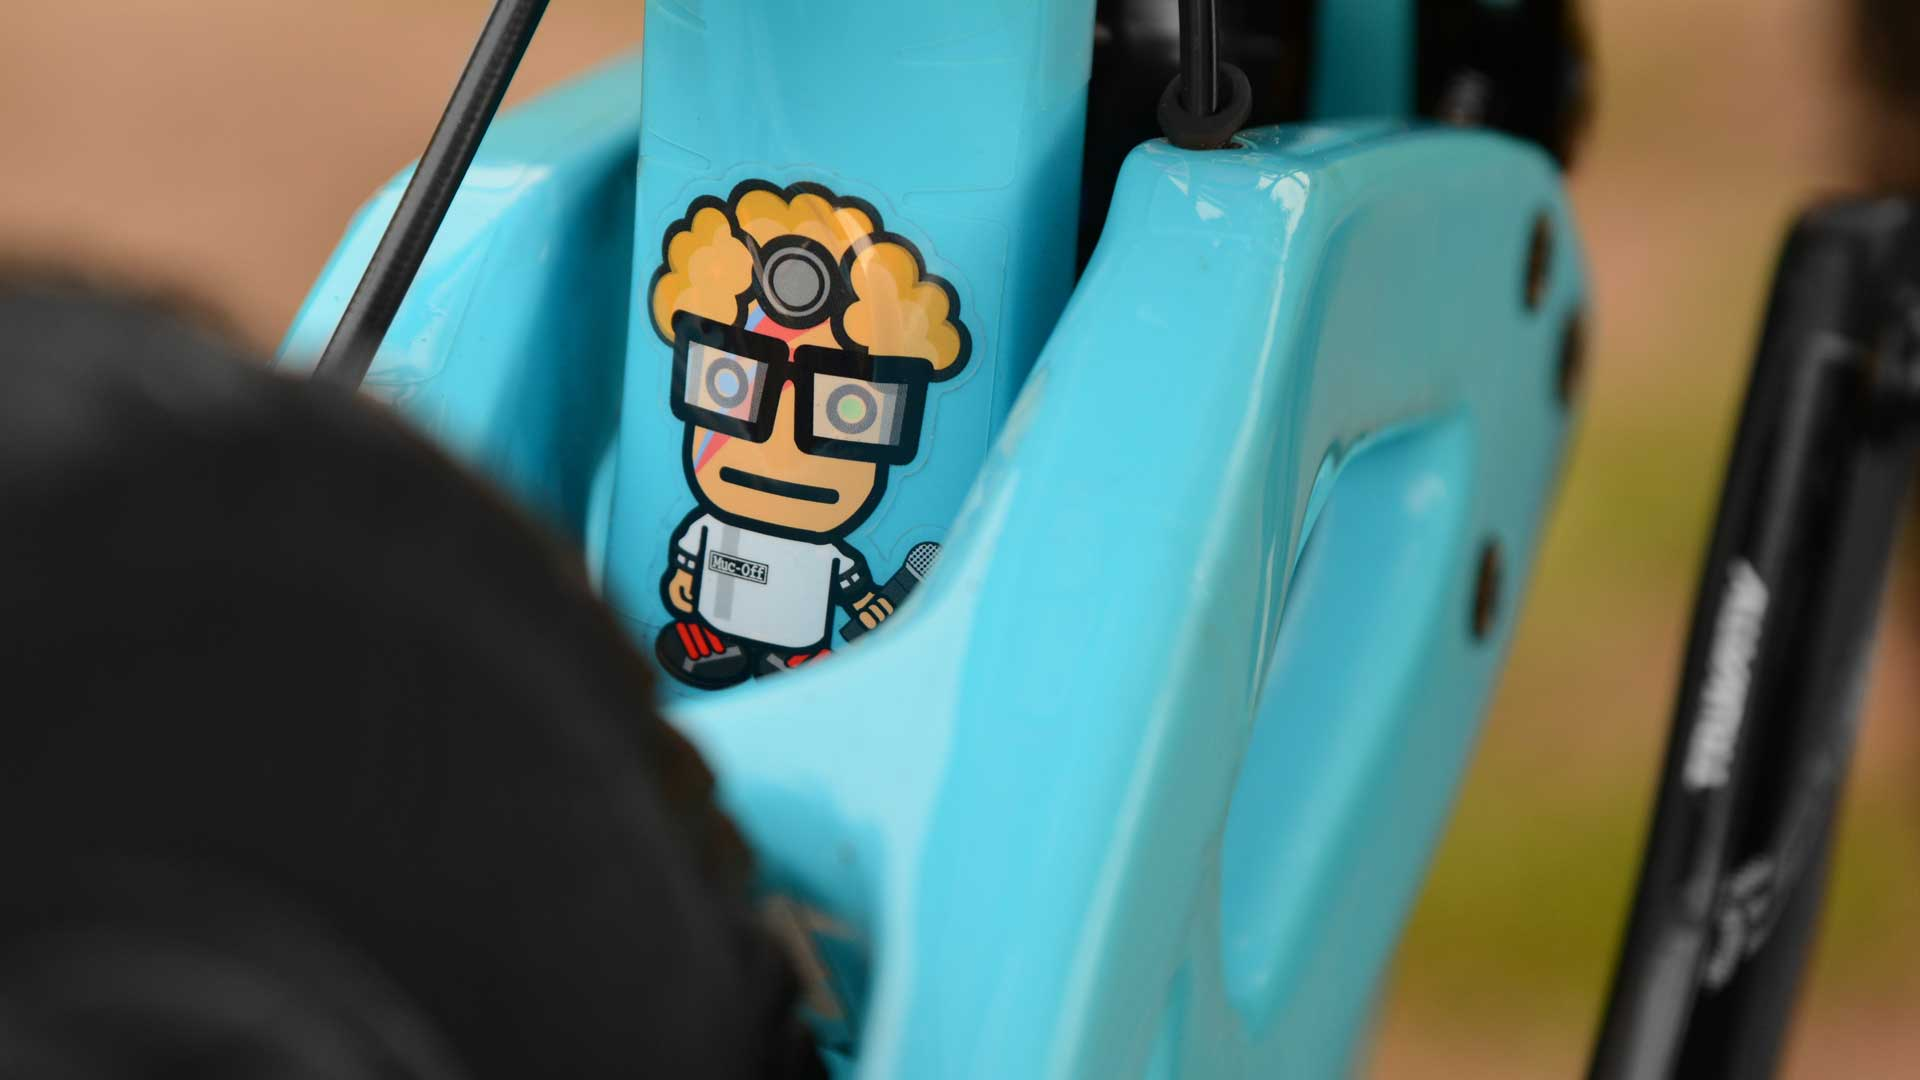 Professor cartoon sticker on bike frame